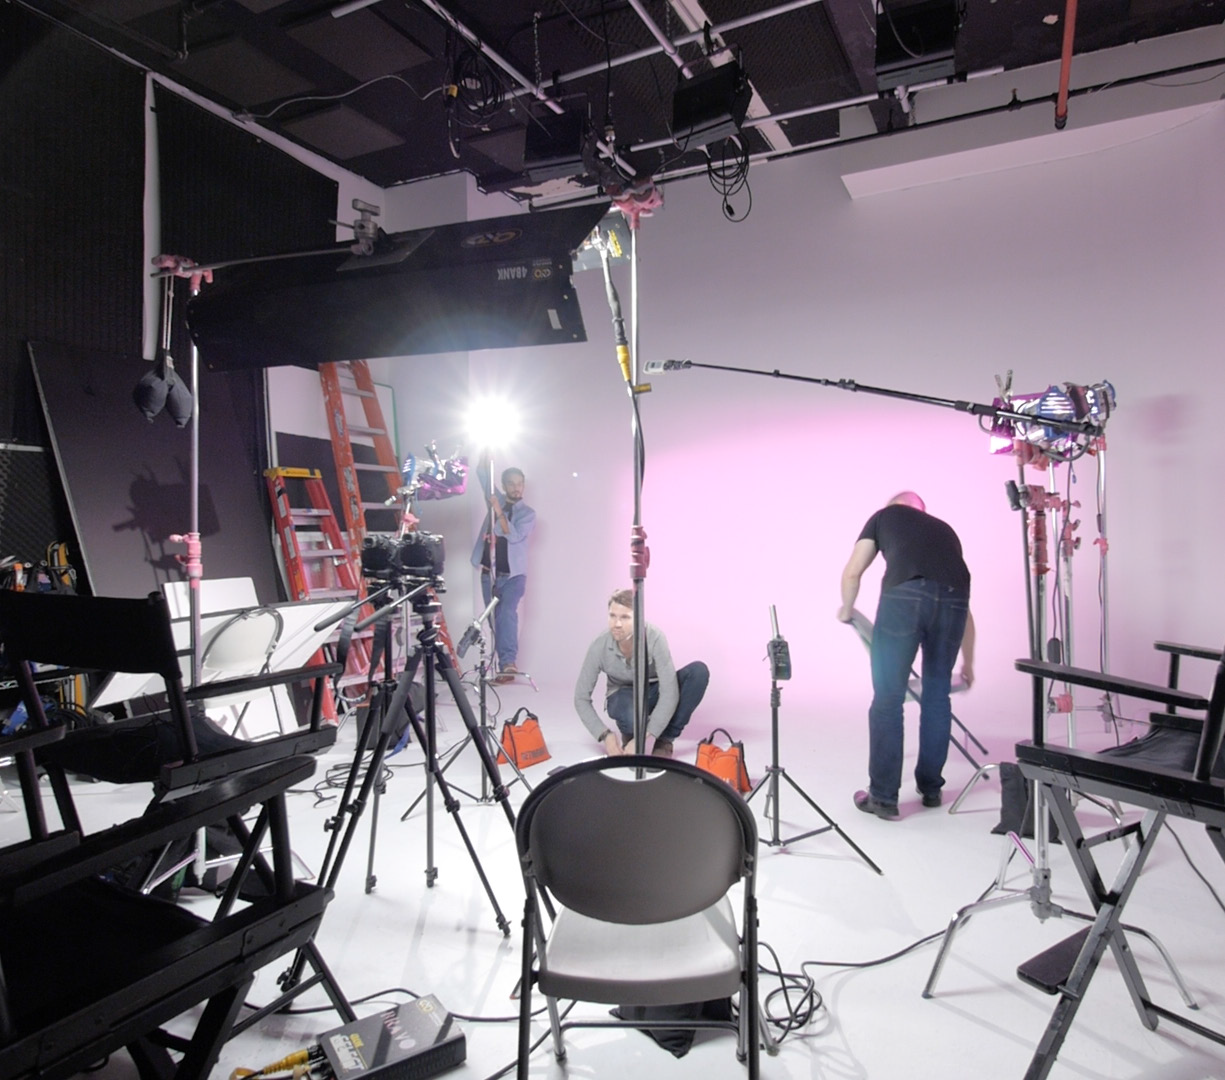 Production Company Around Greenwich, CT - Top Notch Cinema - About-us